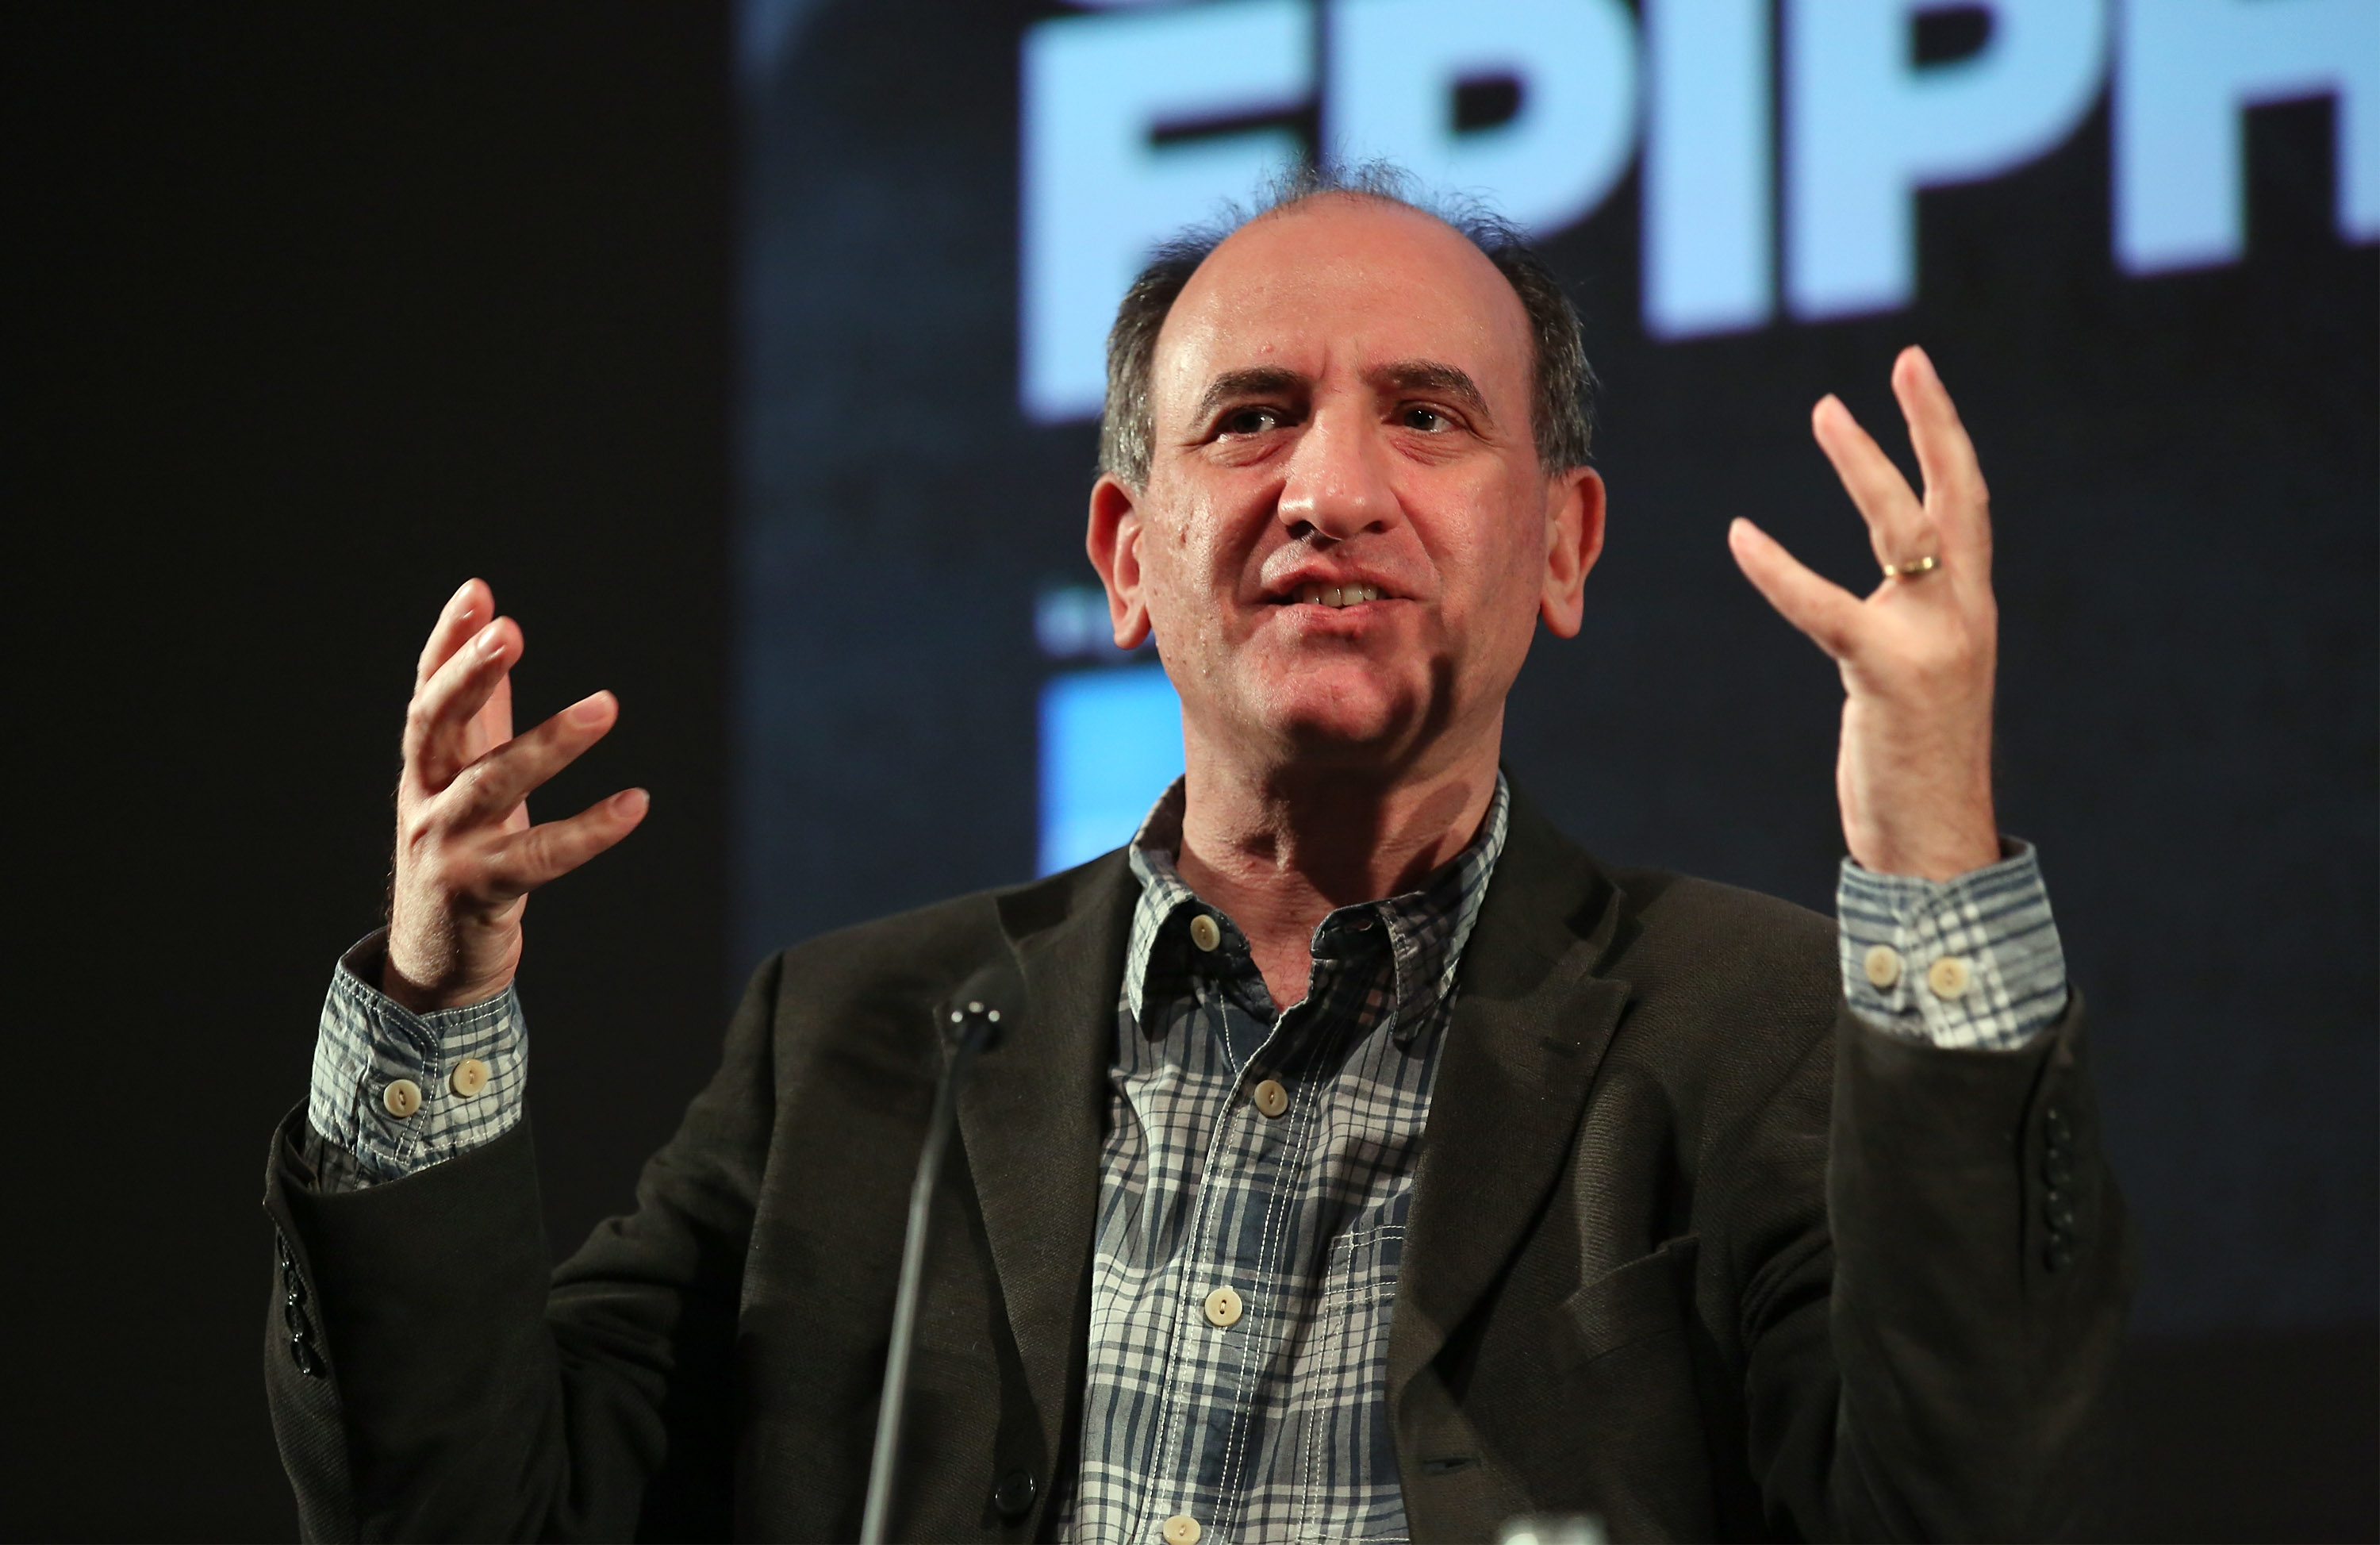 Armando Iannucci introducing the film that inspired him as part of the BFI Screen Epiphanies series in partnership with American Express at BFI Southbank on March 18, 2015 in London.